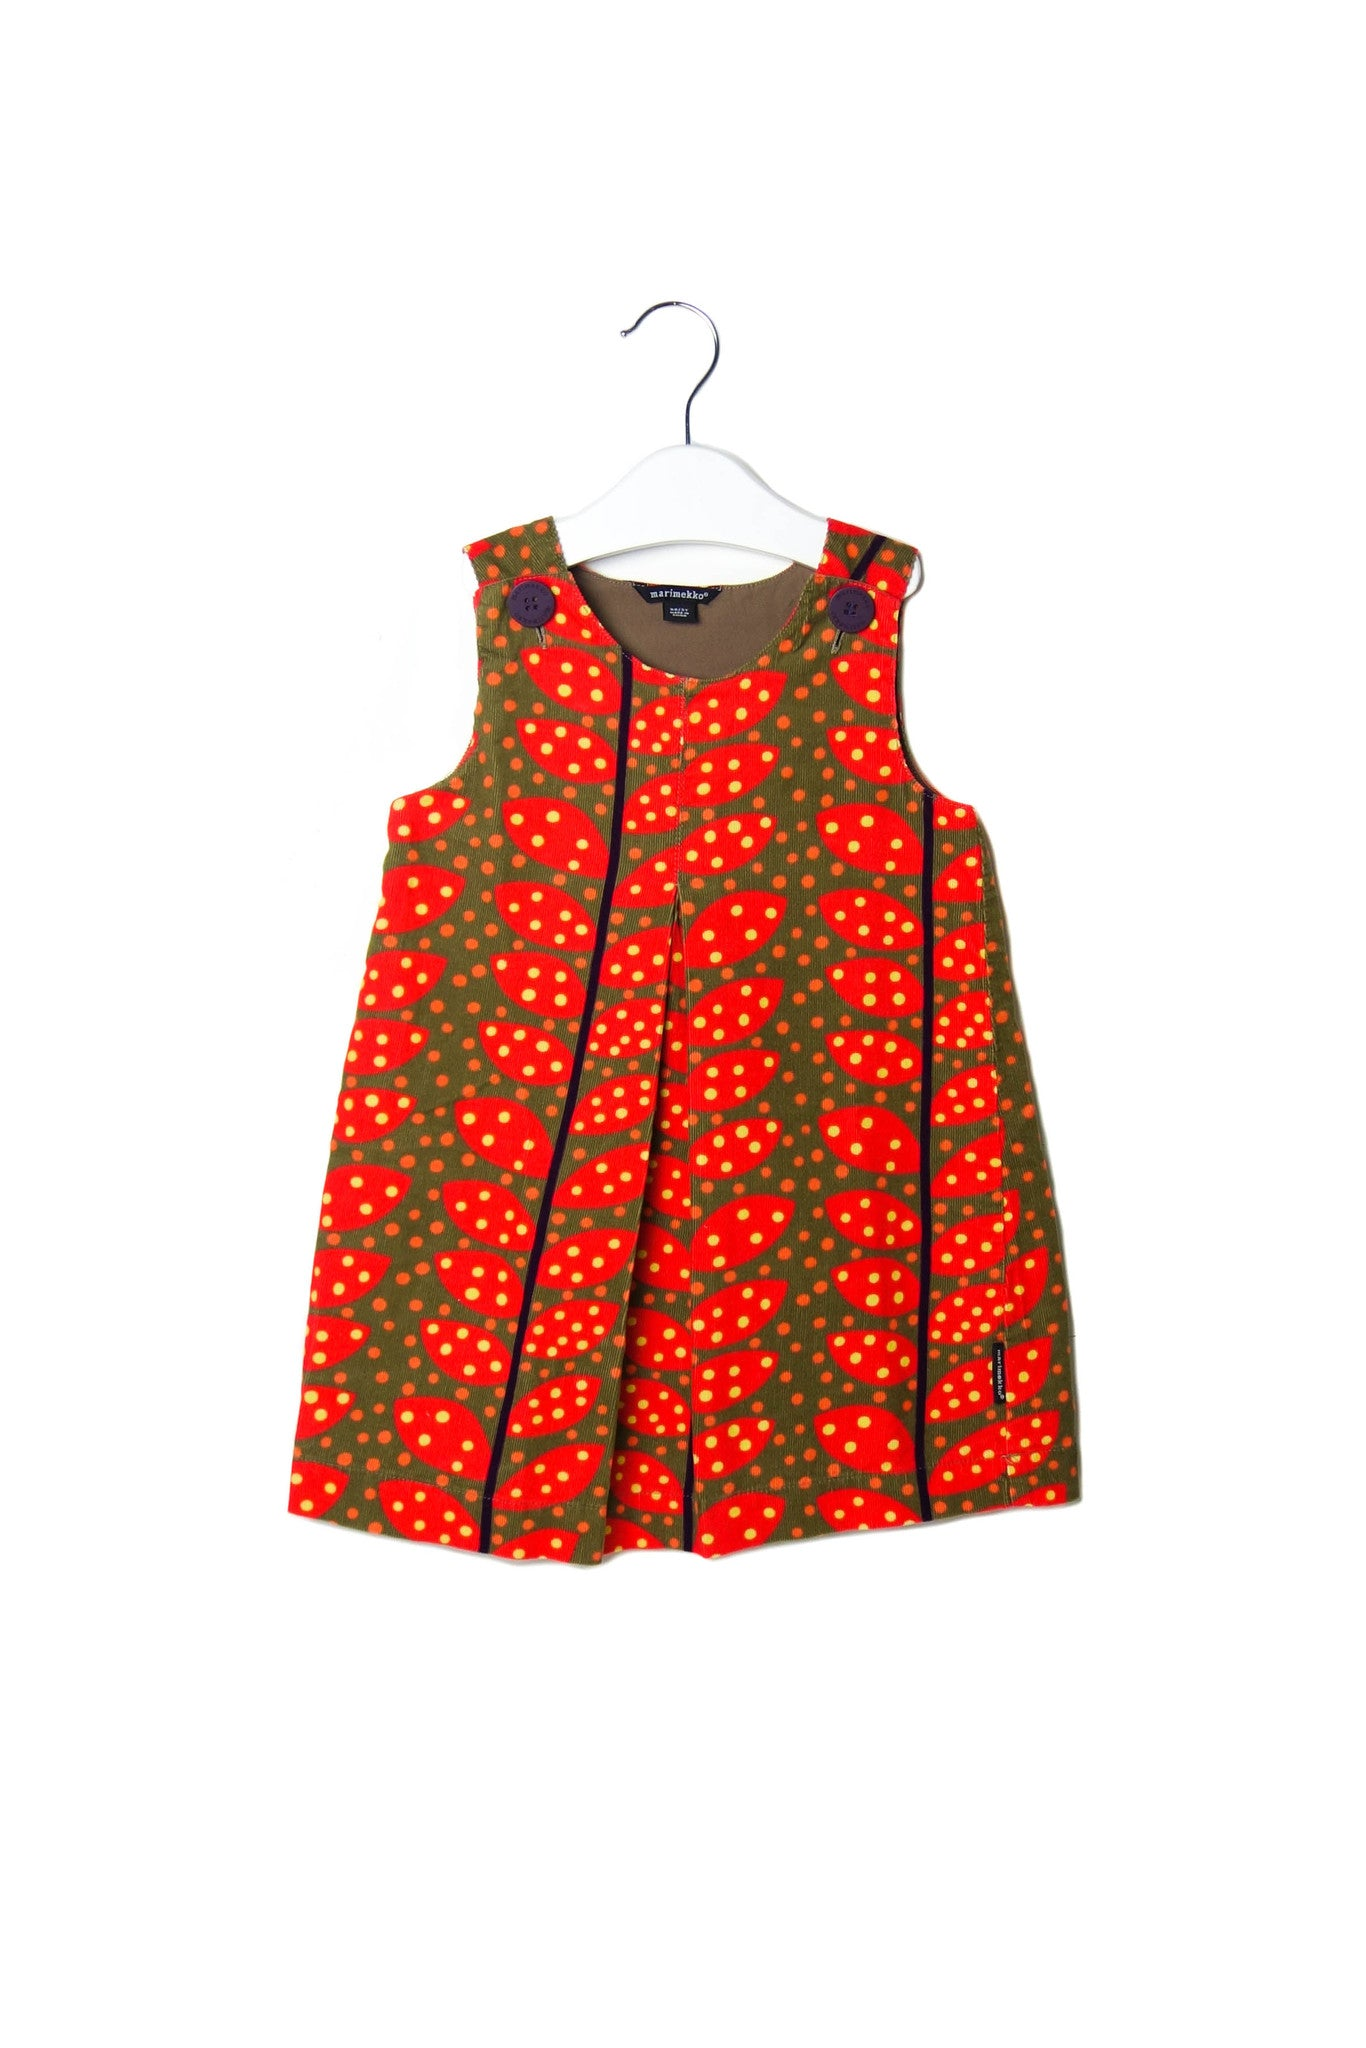 10002146 Marimekko Kids~Dress 3T at Retykle